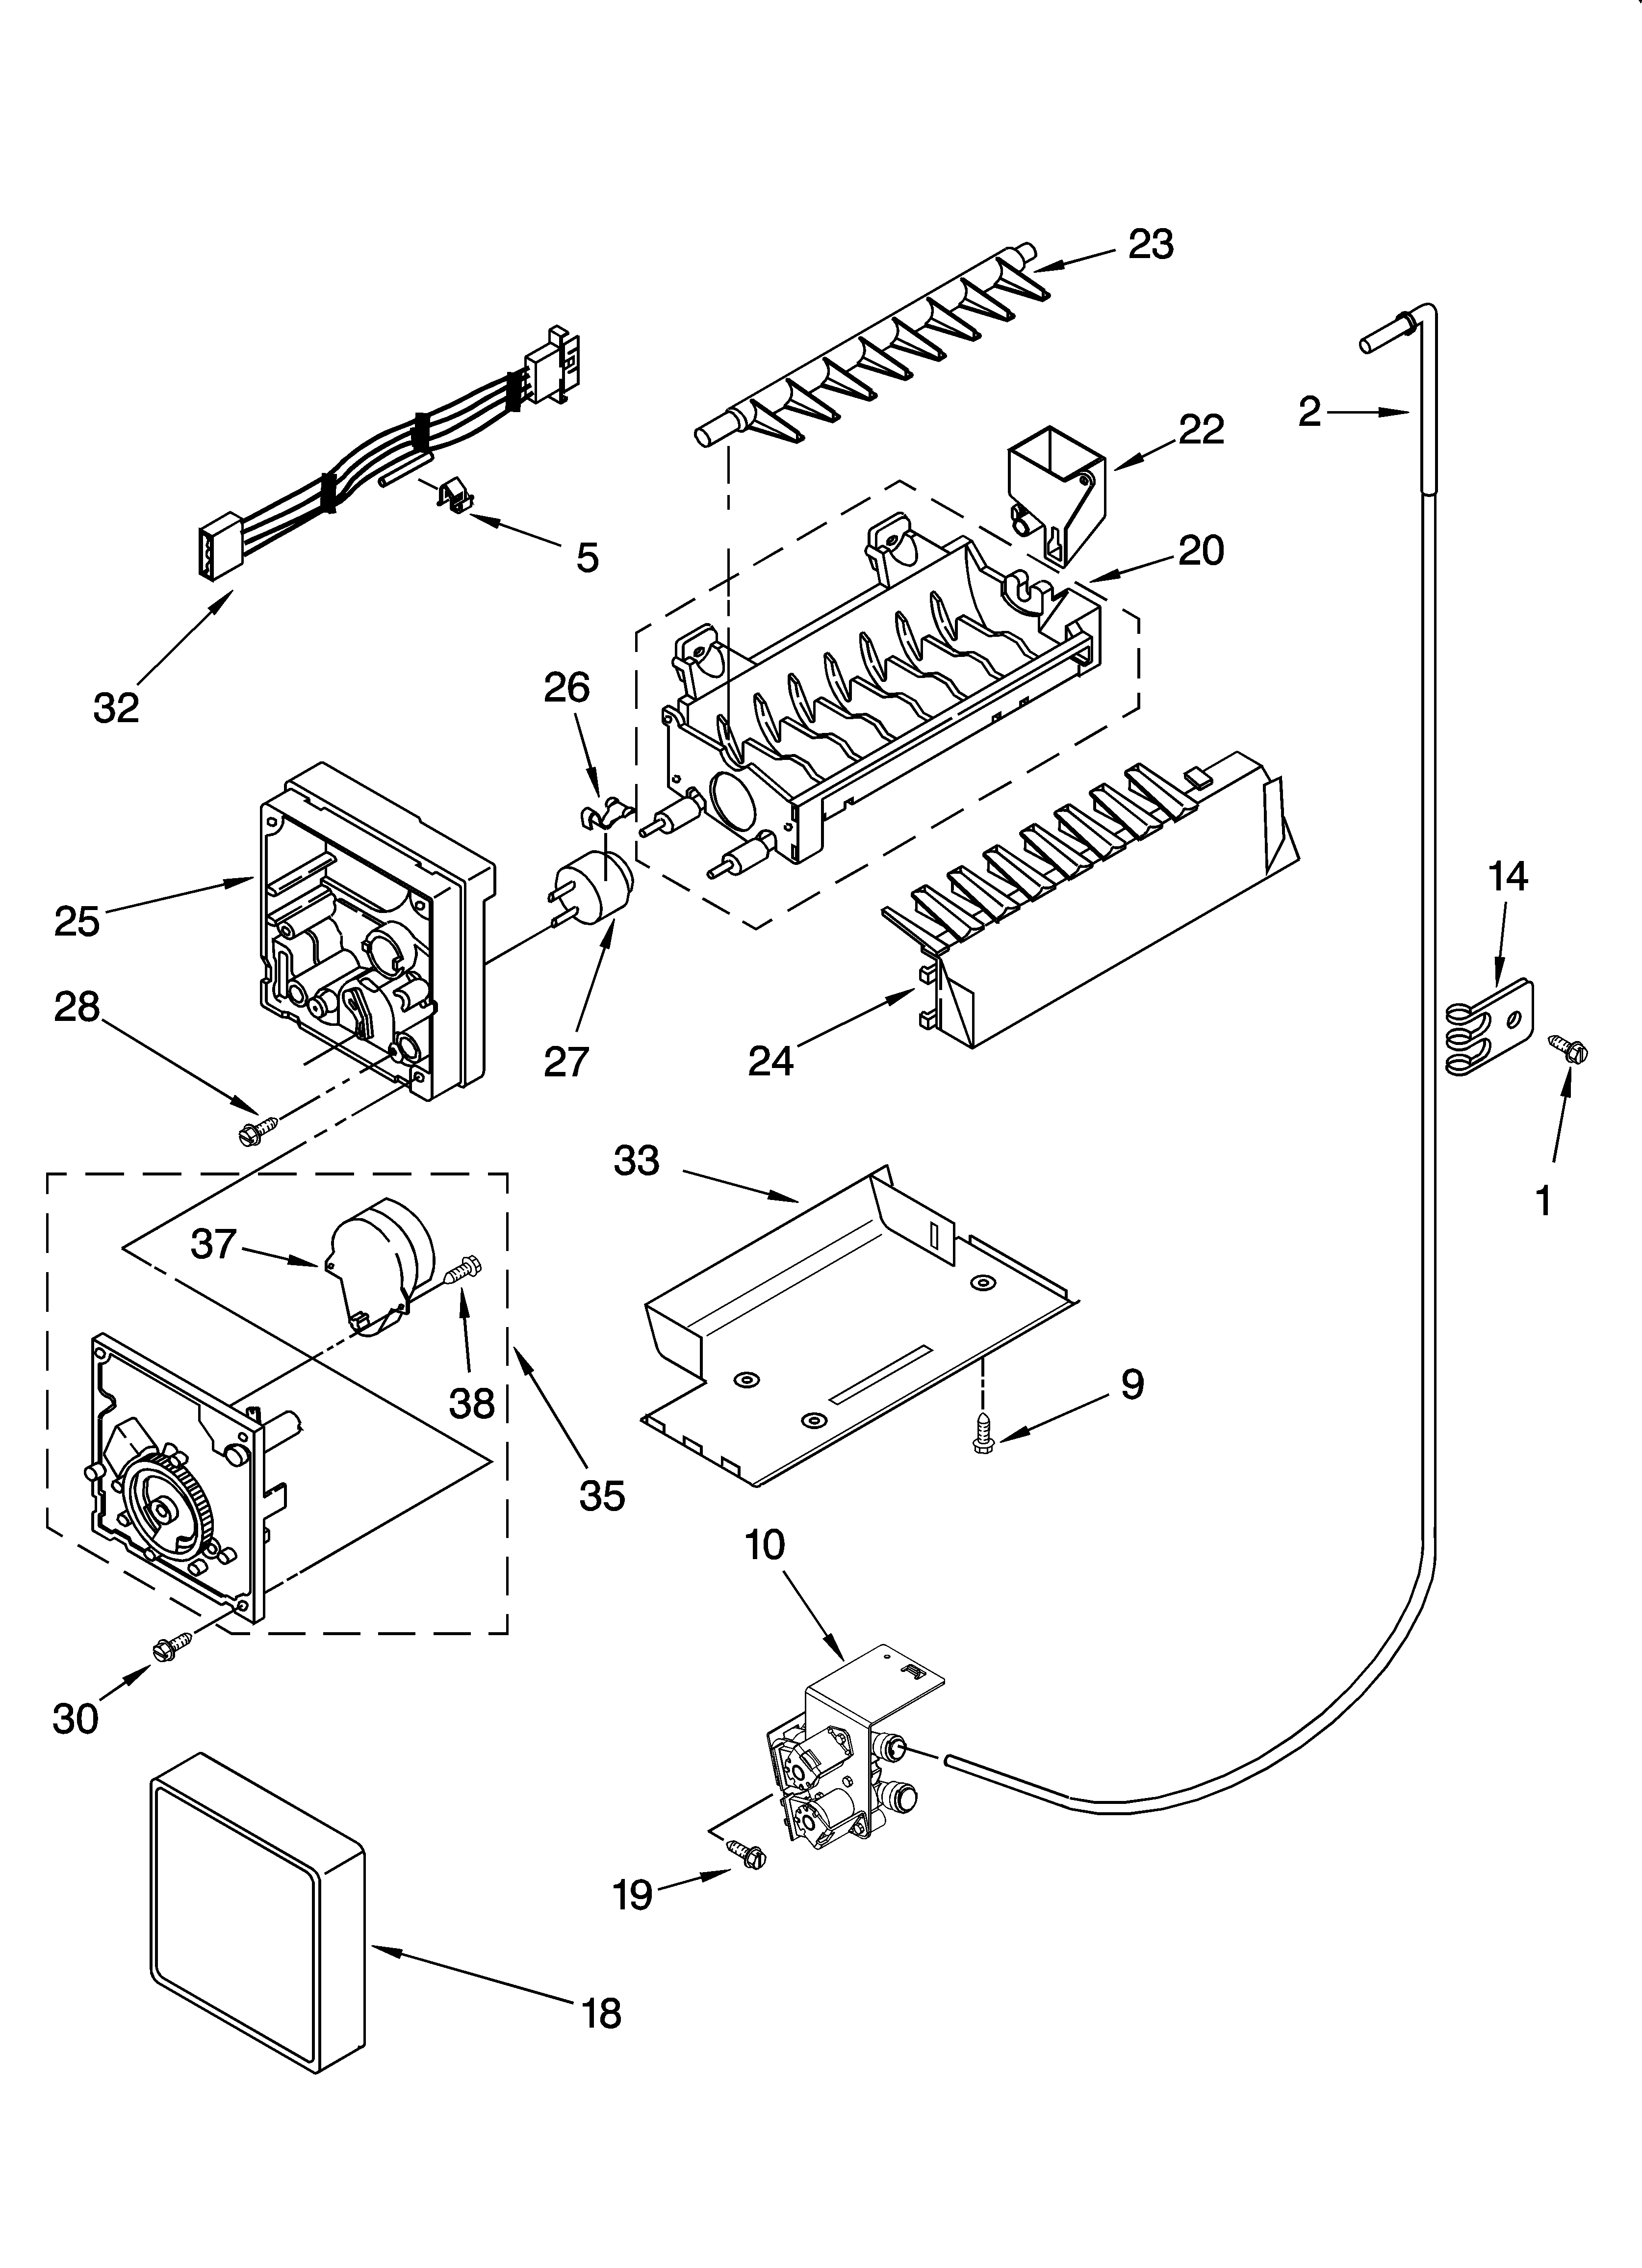 ICEMAKER PARTS, OPTIONAL PARTS (NOT INCLUDED) Diagram